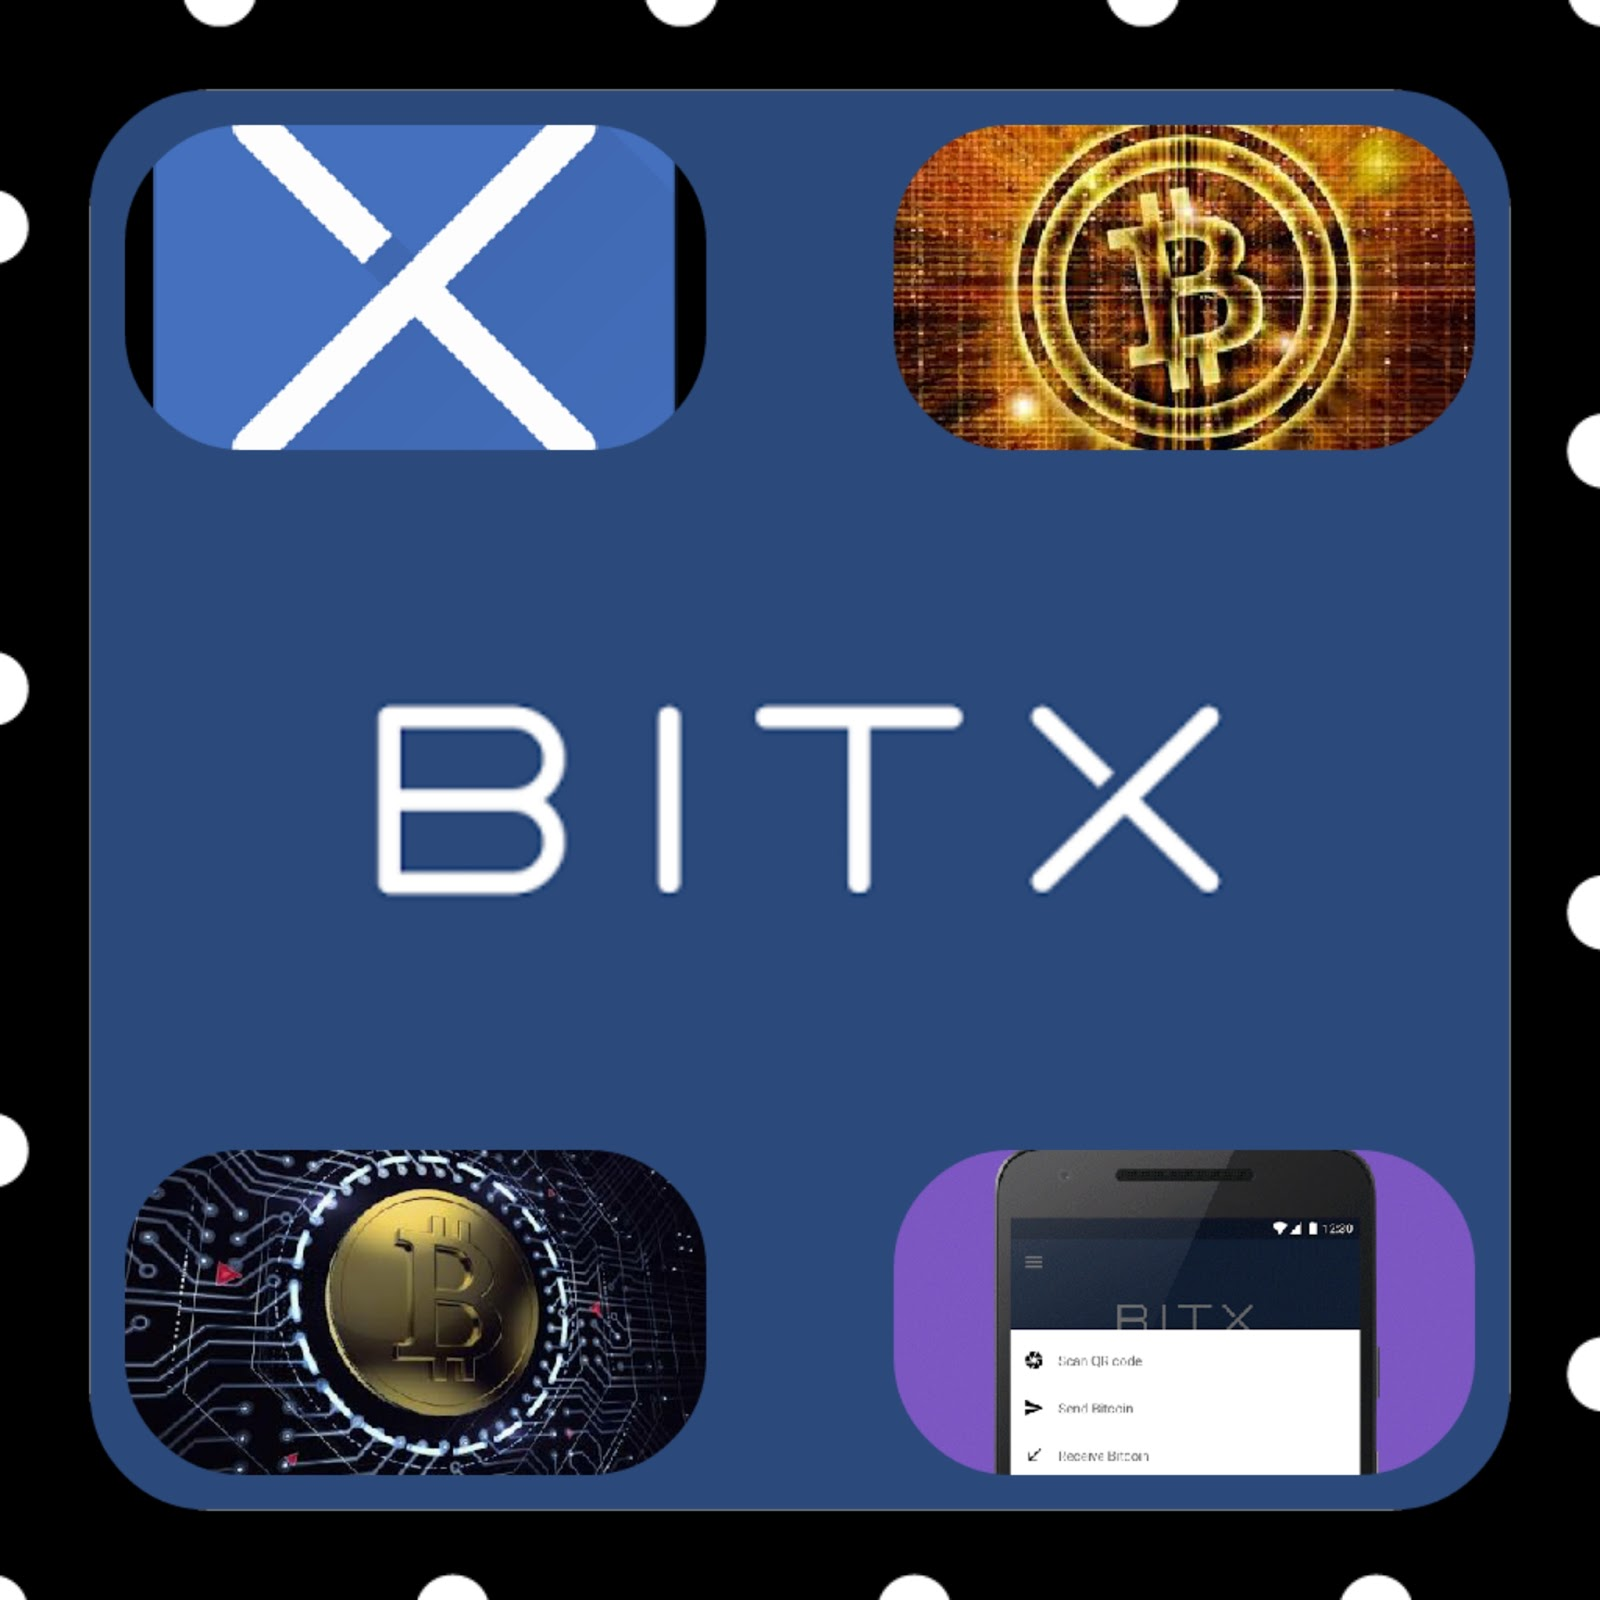 How to verify your bitx wallet address and withdraw bitcoins